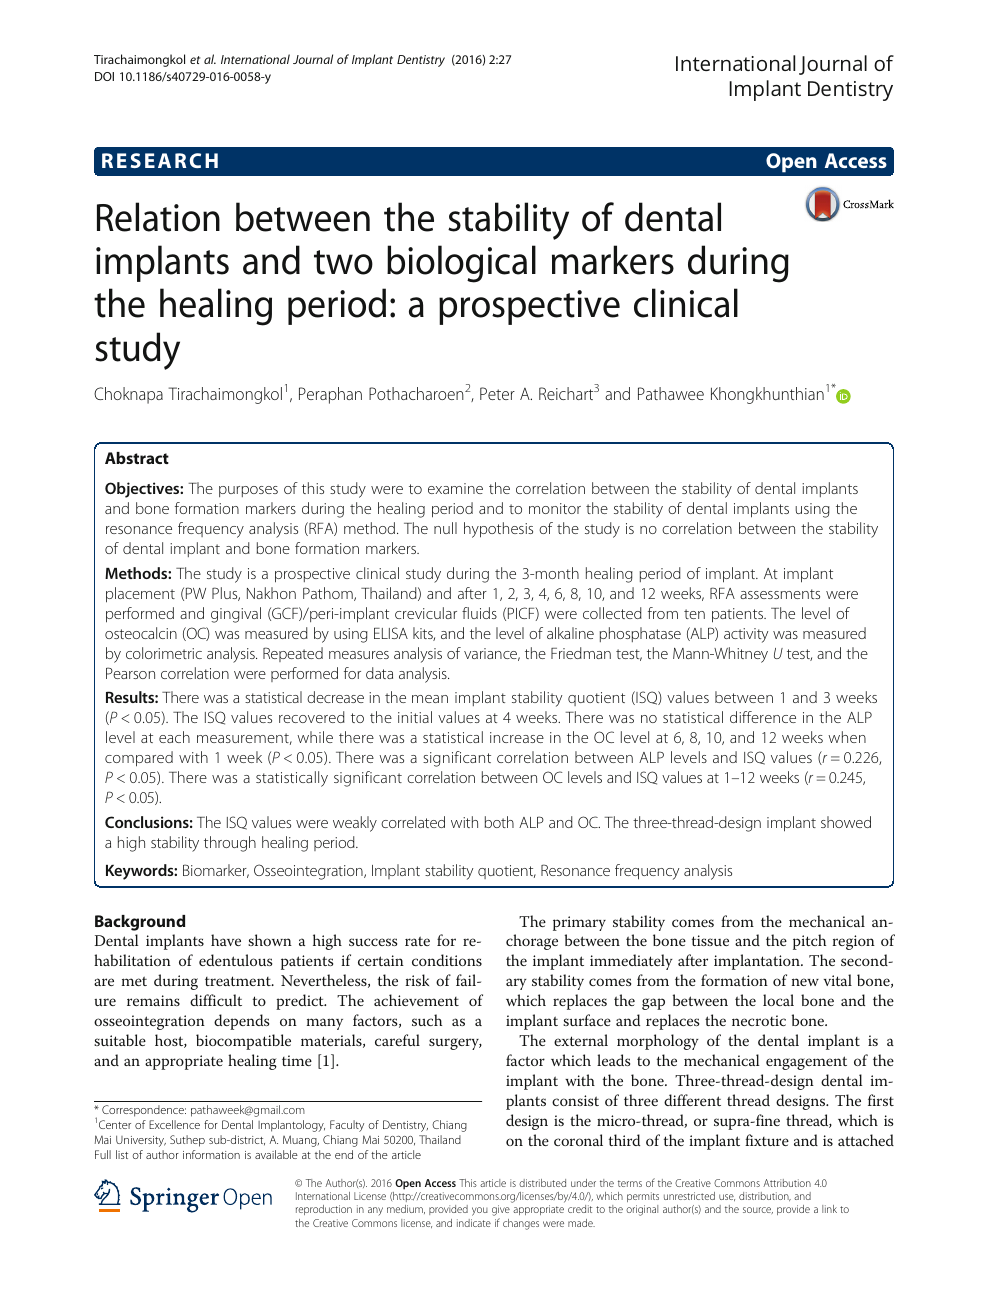 Relation between the stability of dental implants and two biological